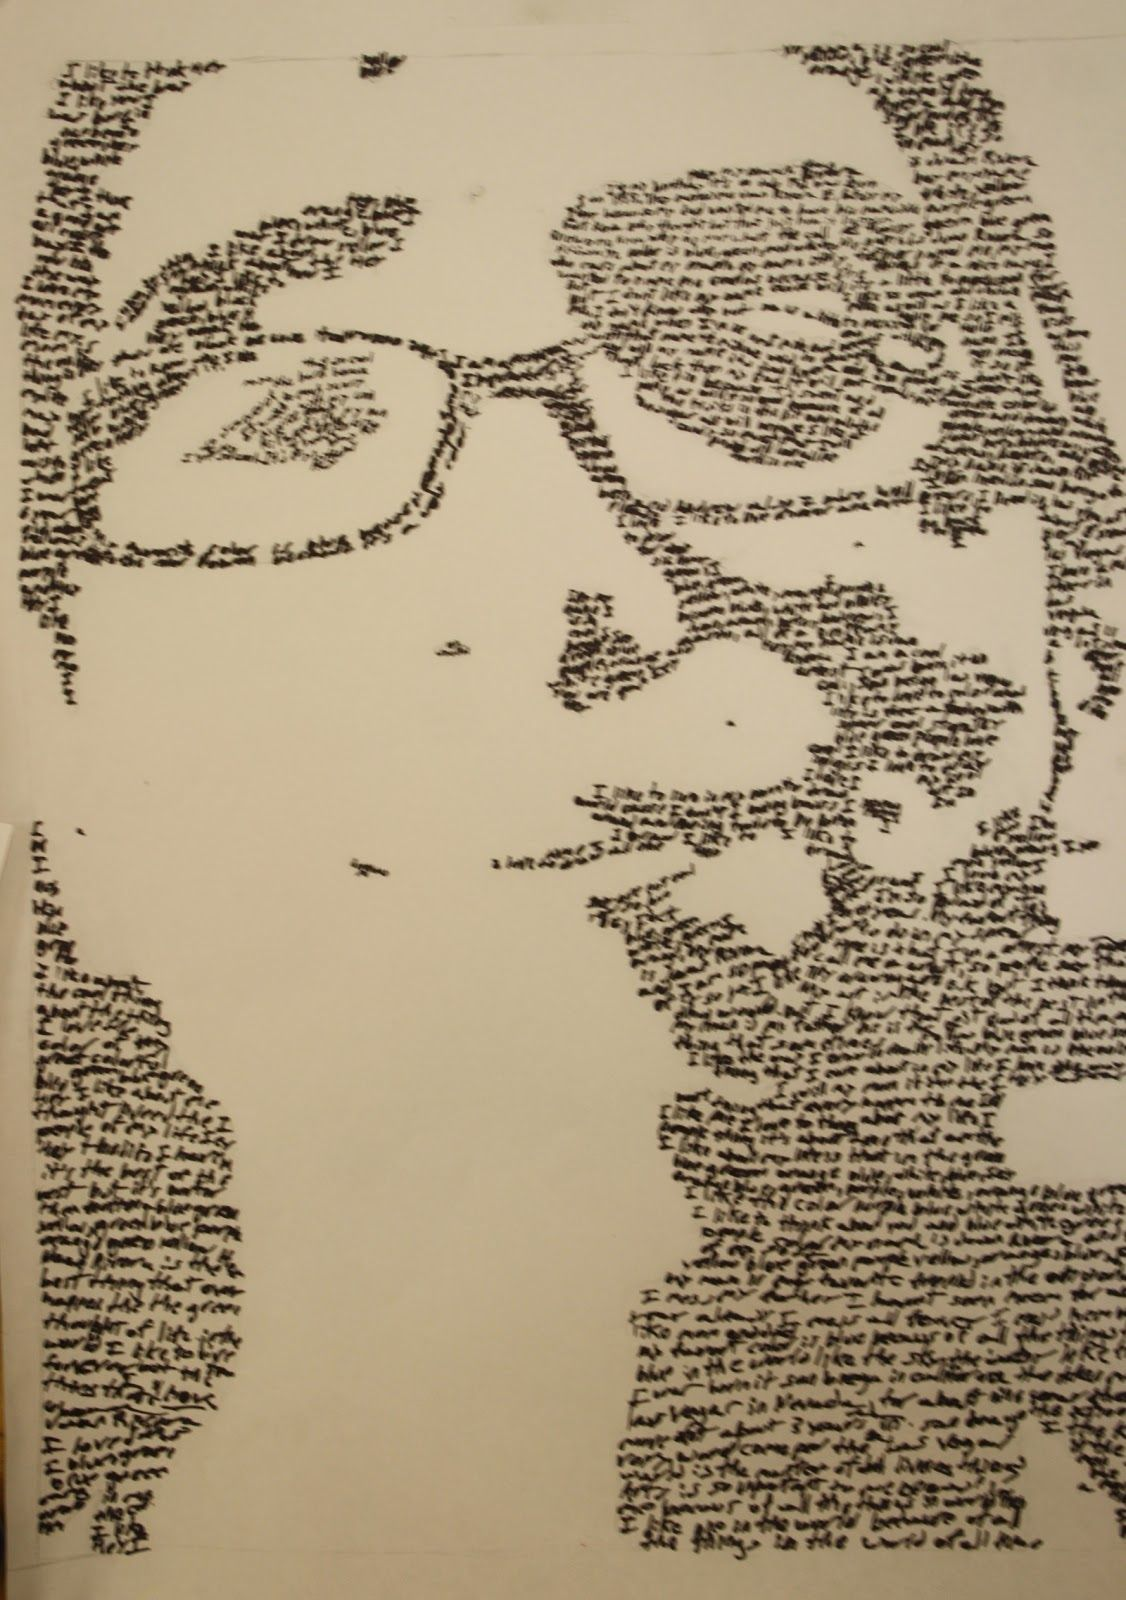 A Portrait Made Out Of Words Yep You Heard Me My 8th Grade 2d Class Made Their Portraits